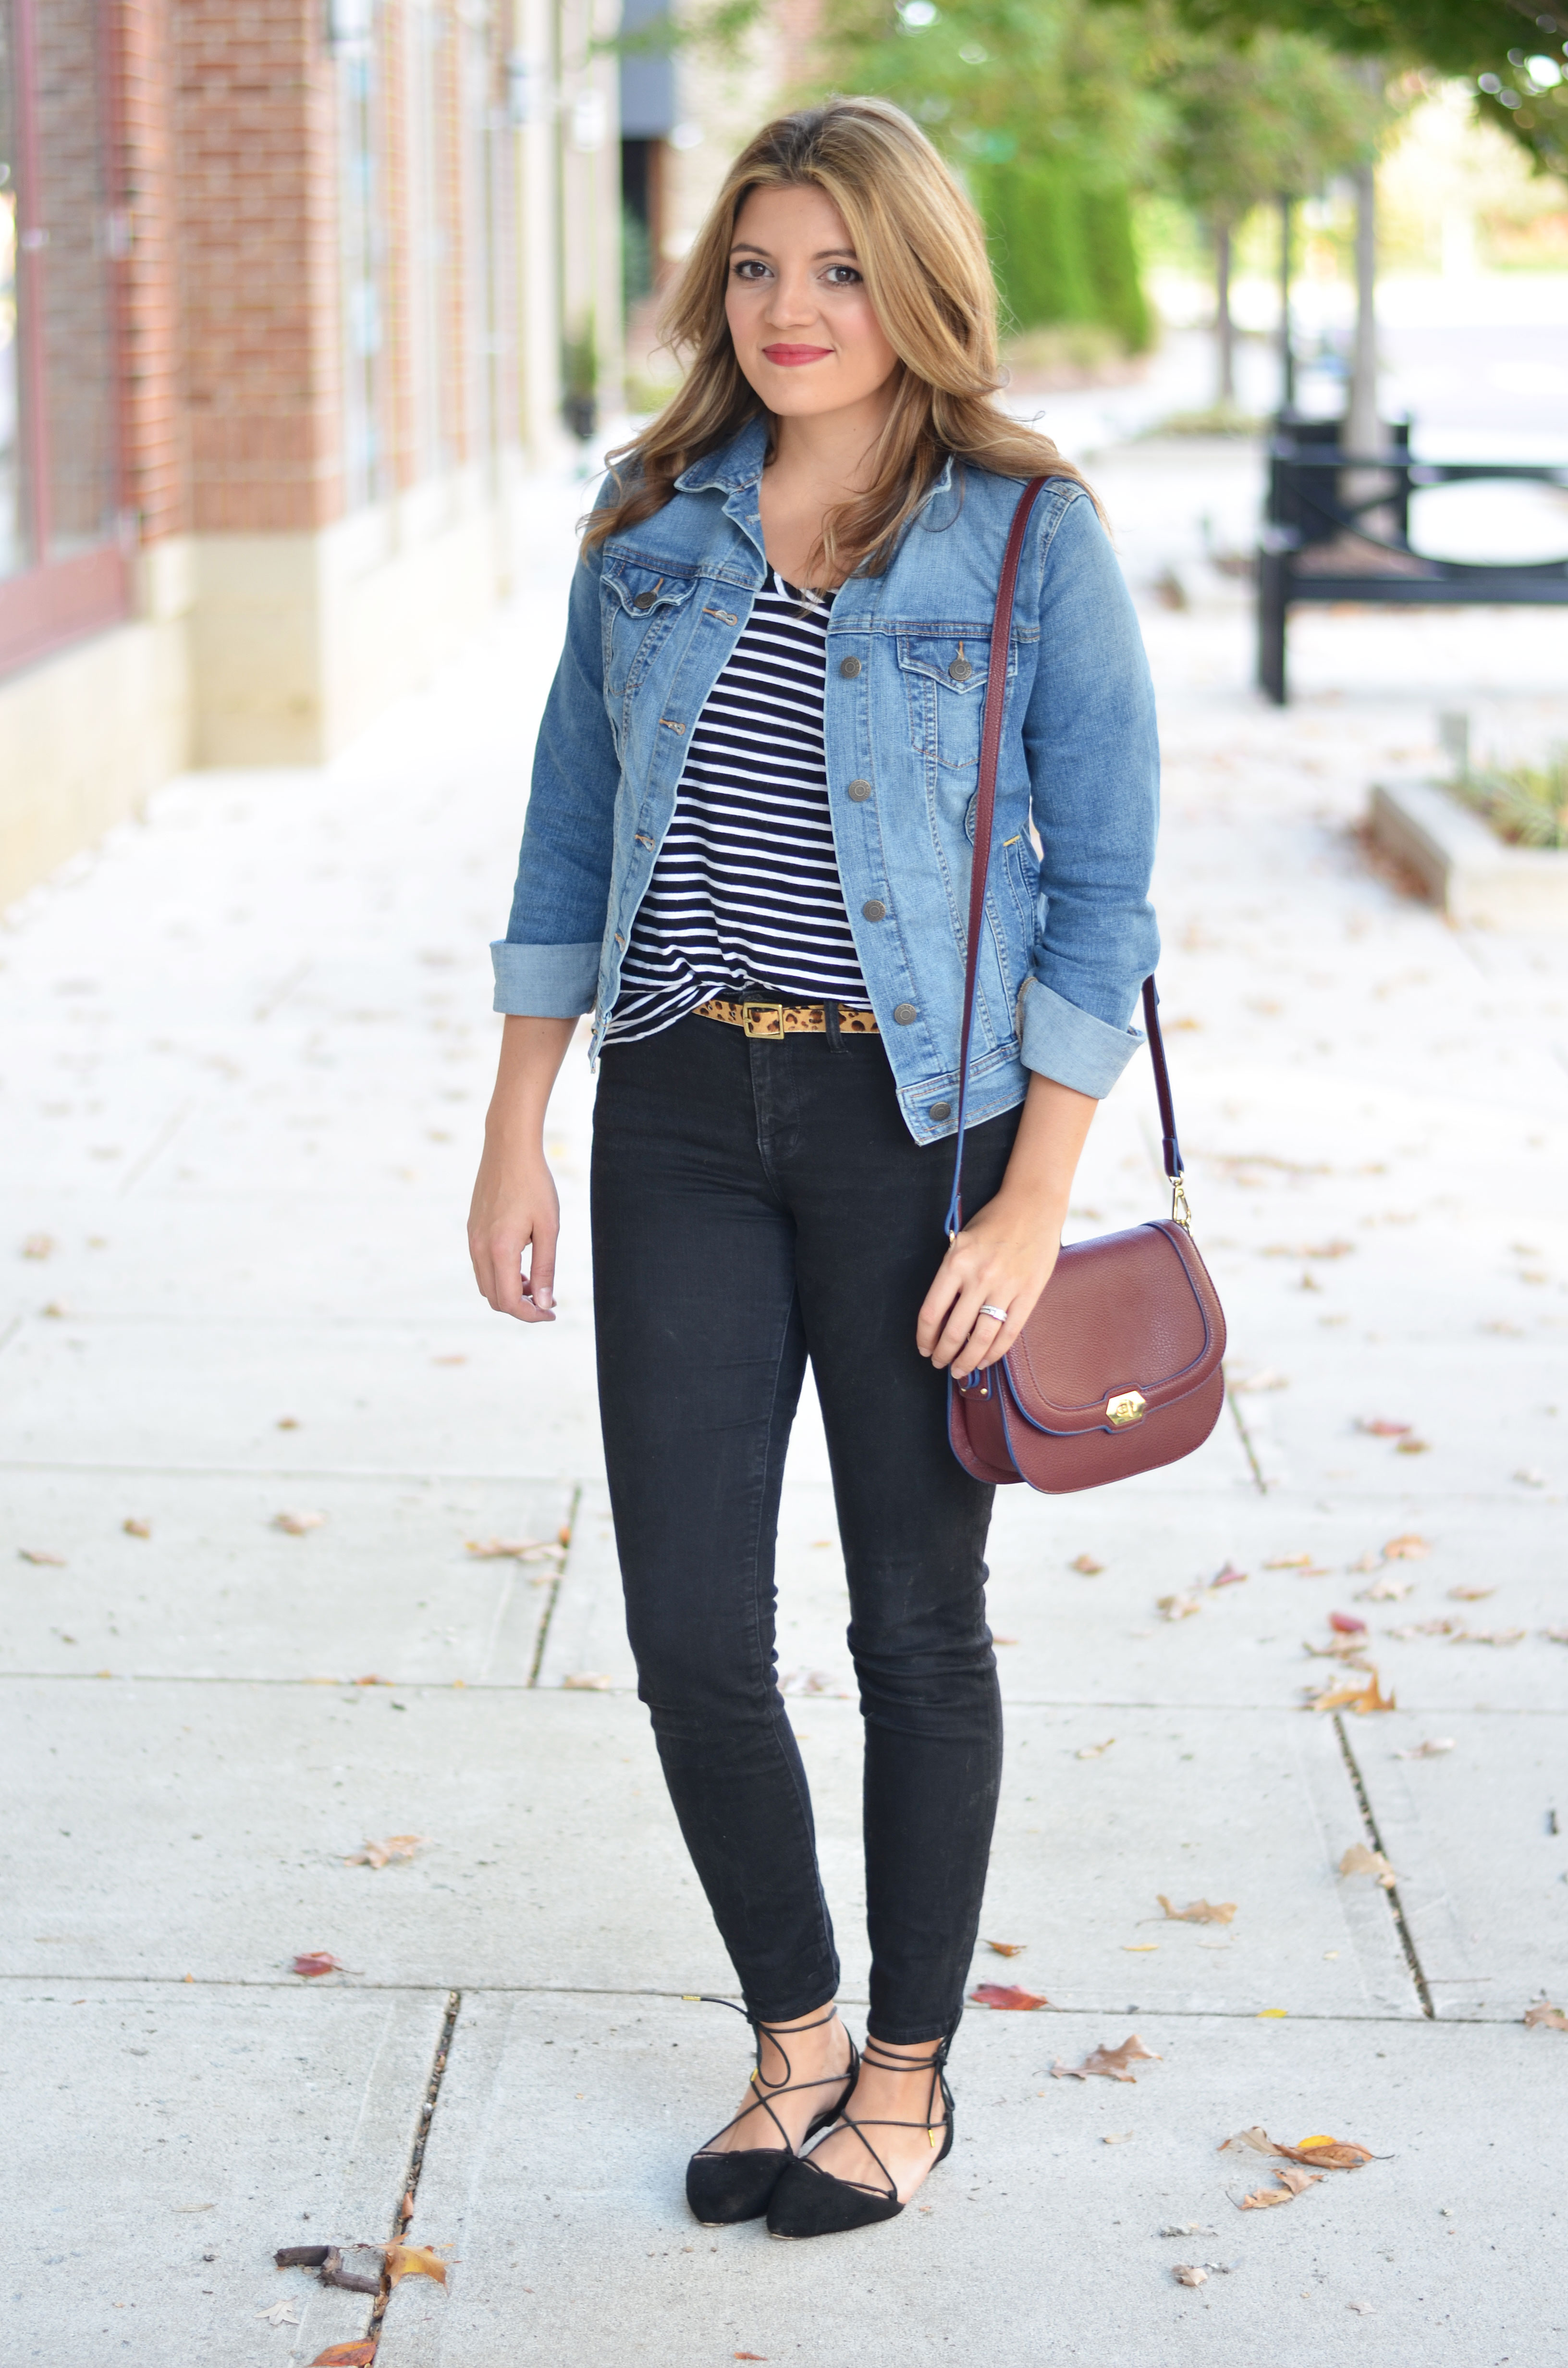 The Perfect Denim Jacket - Coat Nj